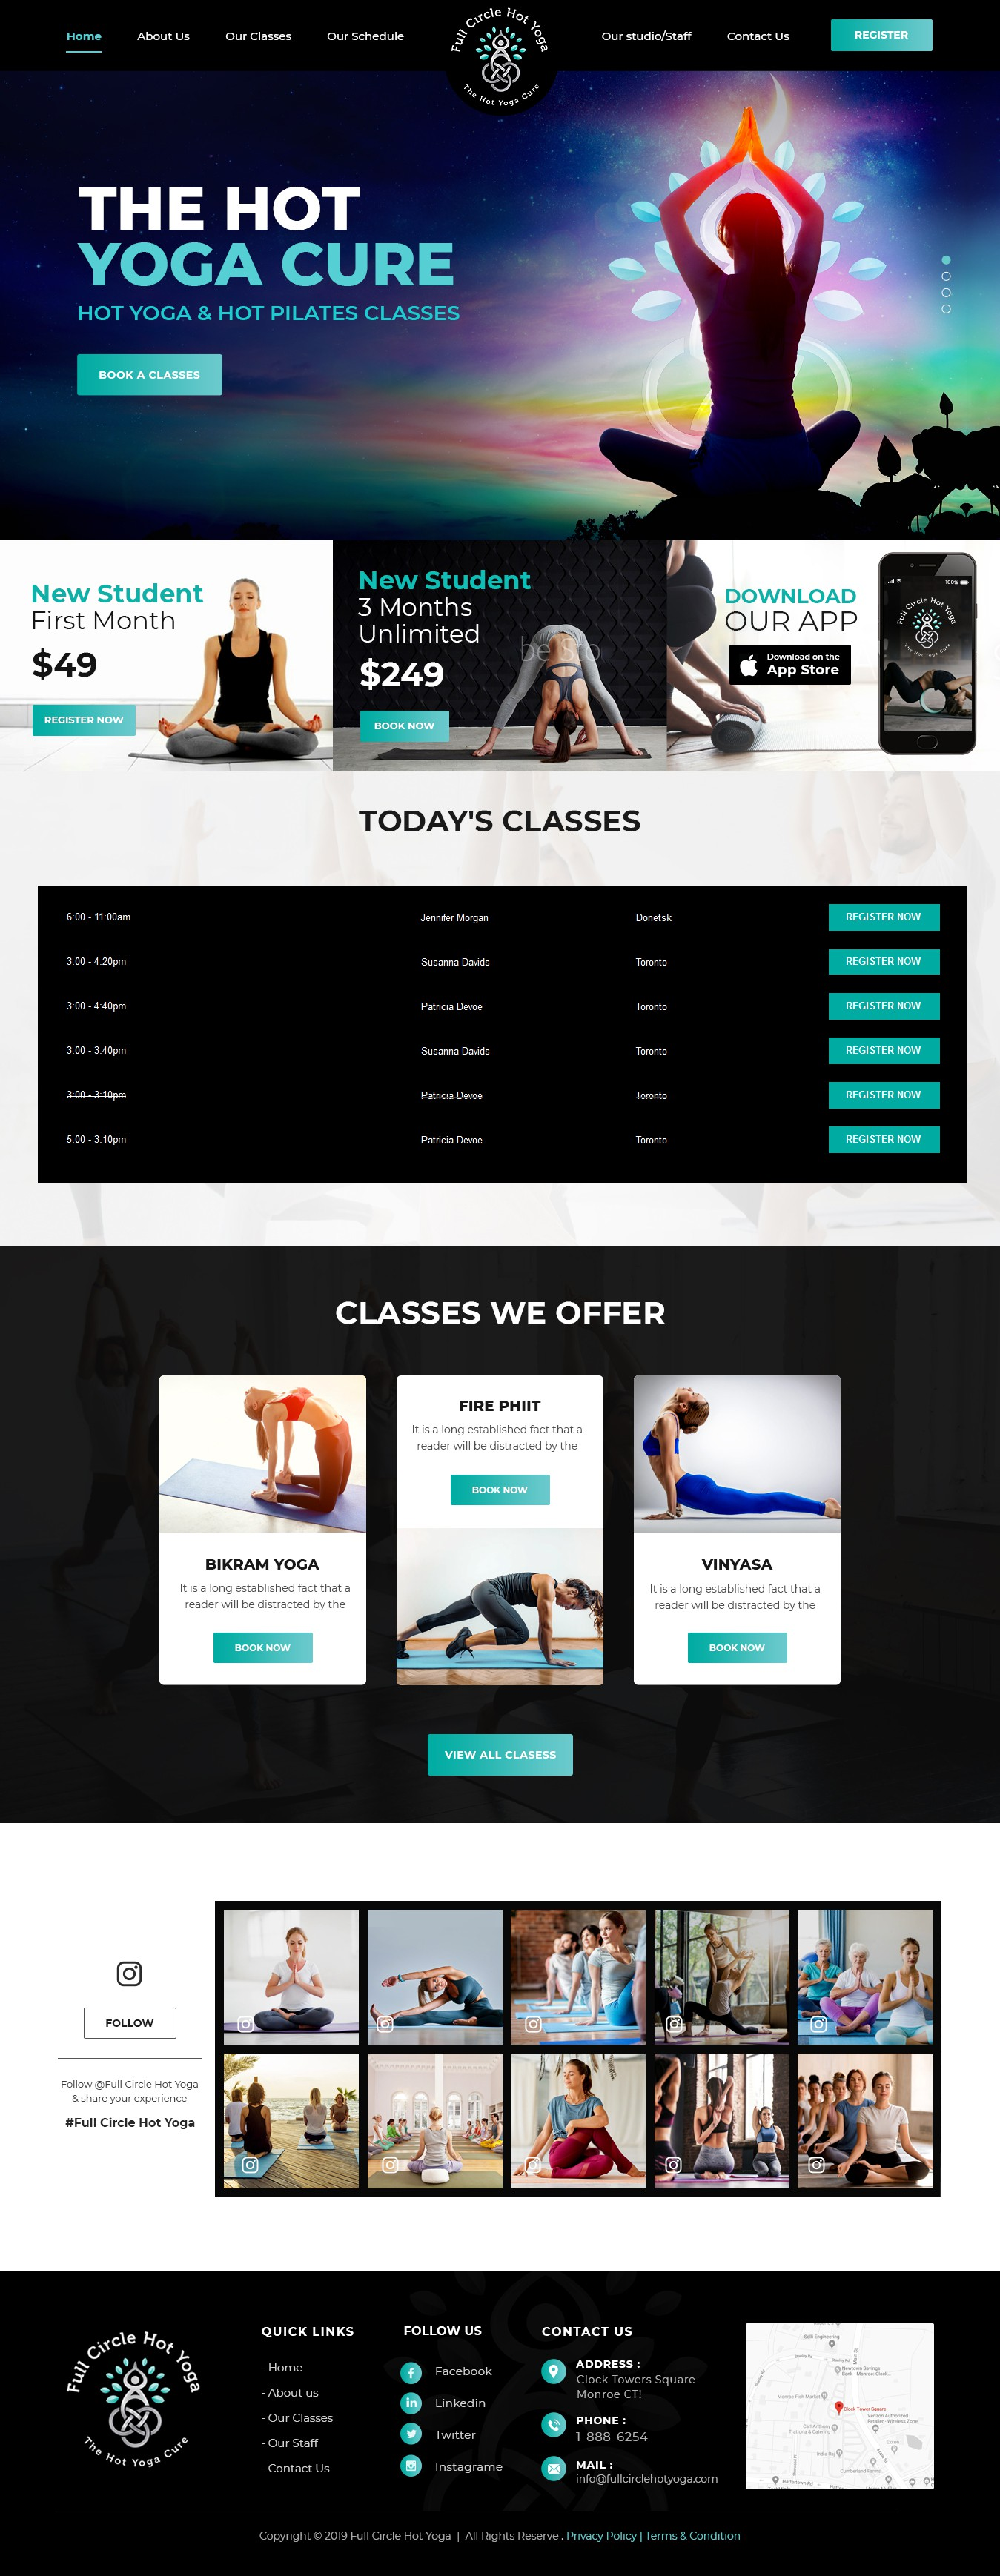 HOT YOGA NEEDS A HOT WEBSITE